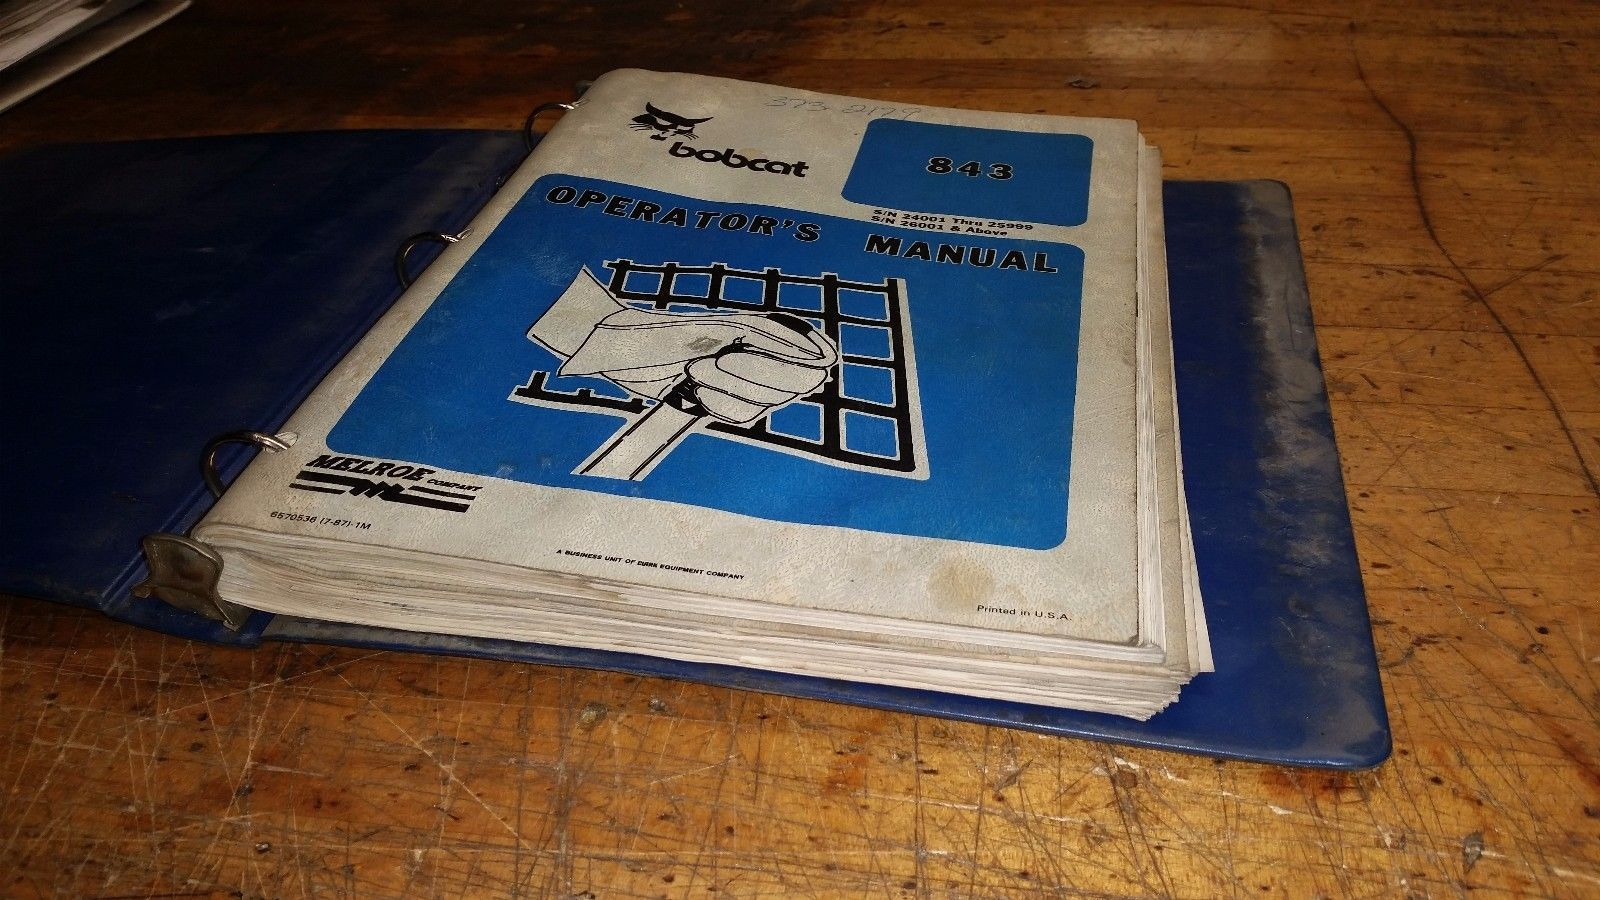 Bobcat 843 Service parts owners Repair Manual book guide printed paper (3 books)